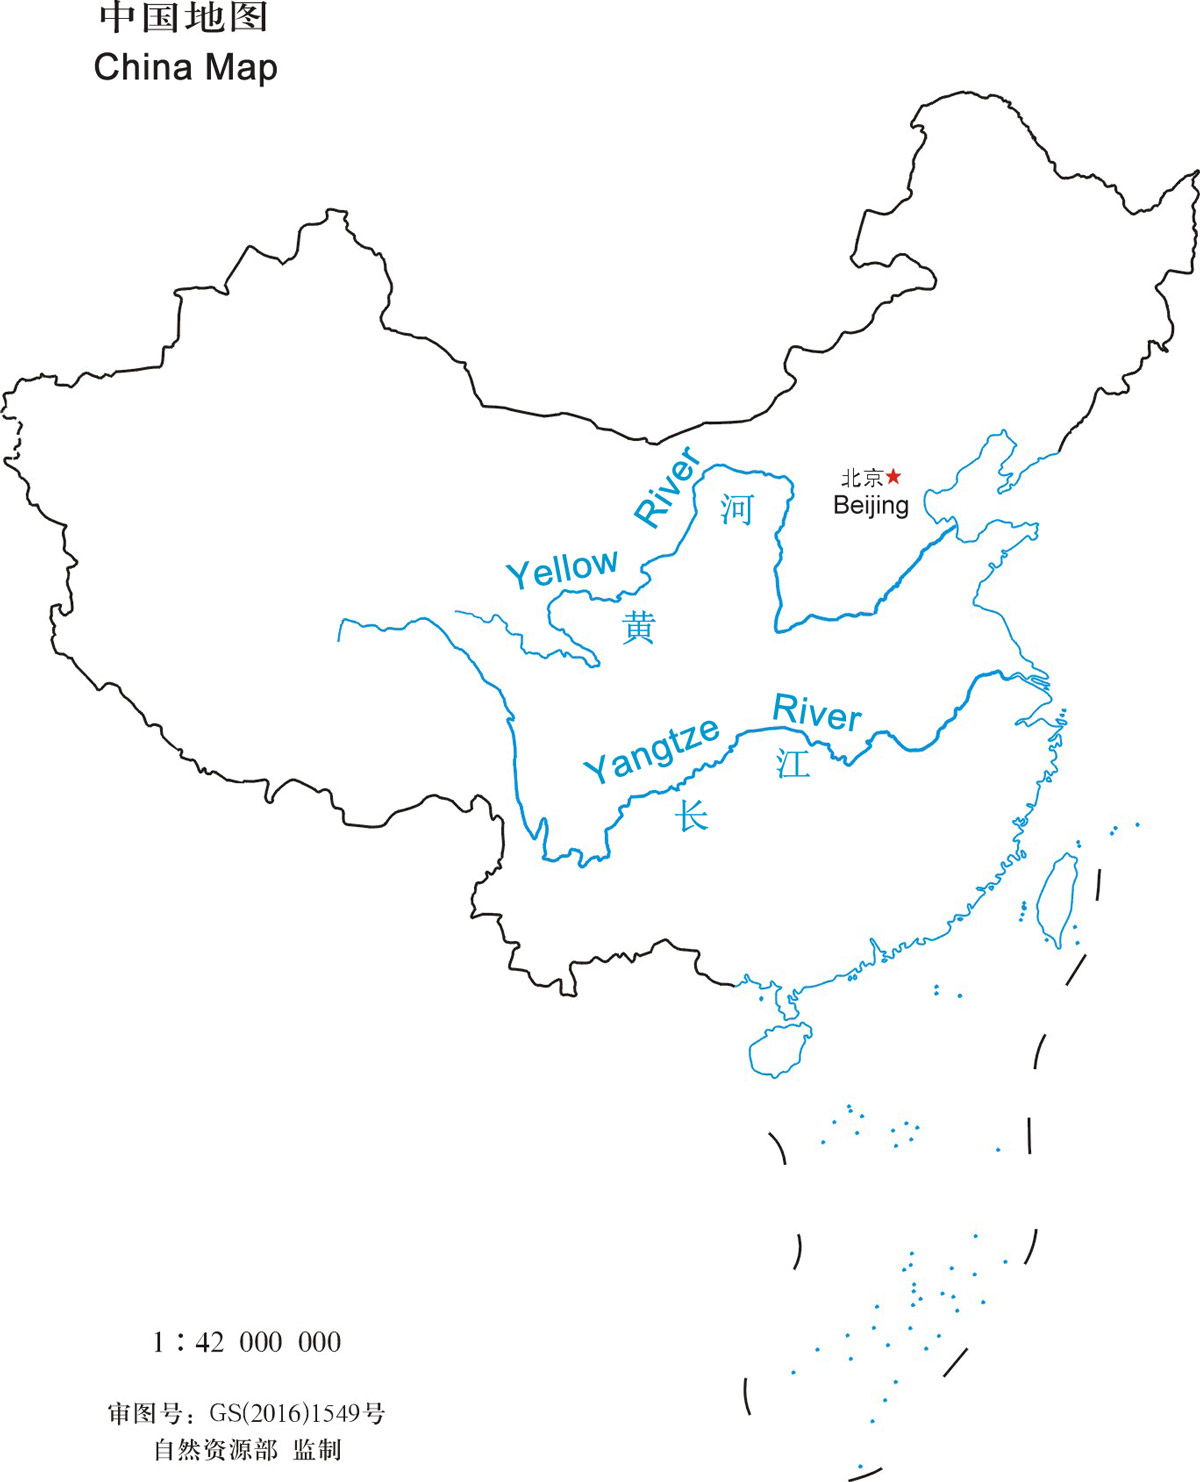 China Rivers Map 2018 Important Rivers in China